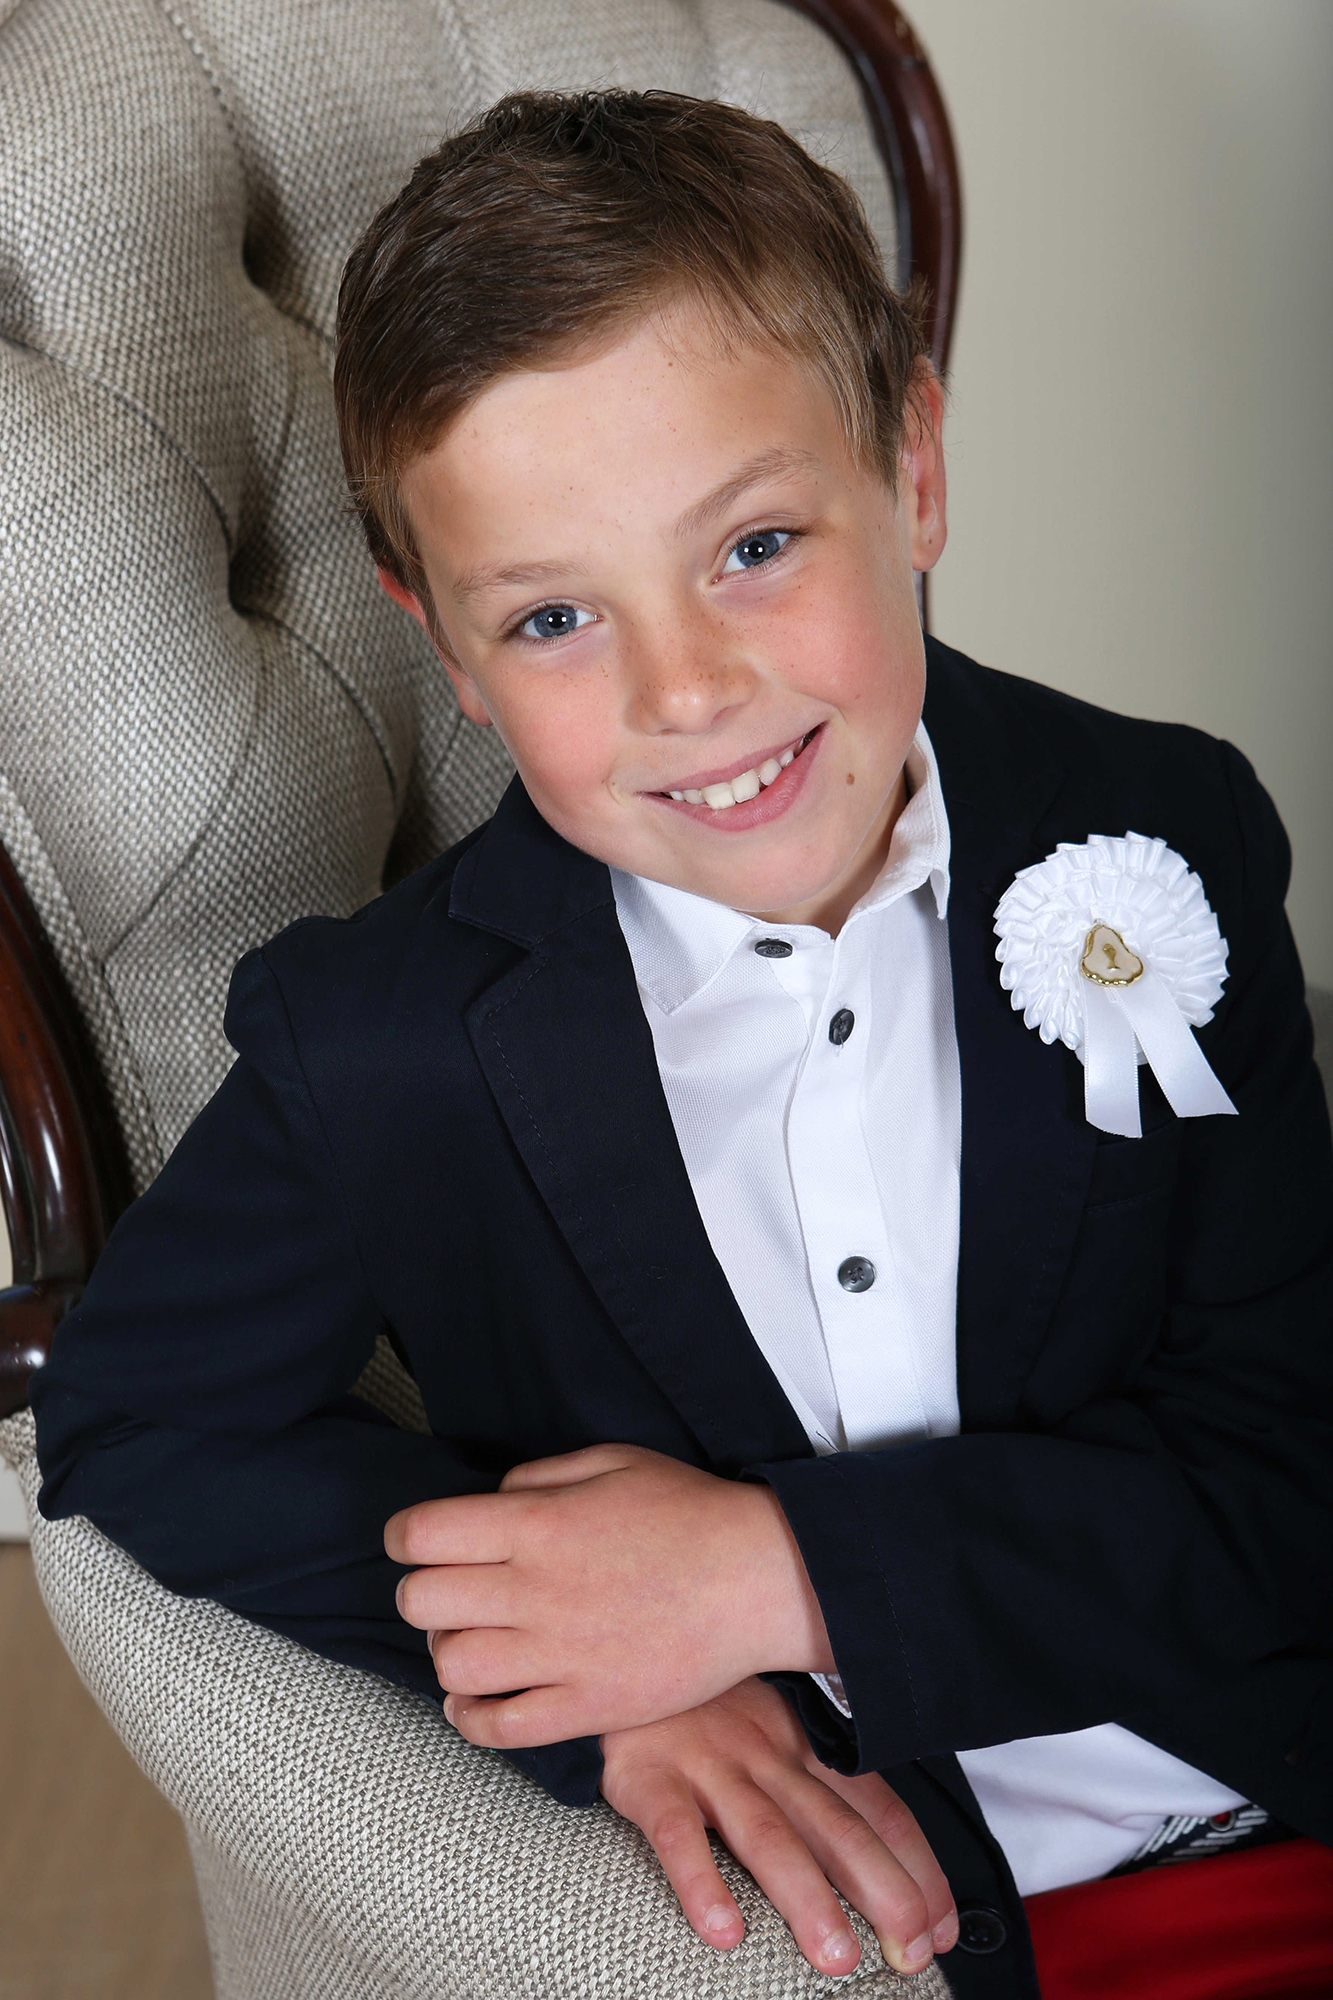 Communion boy by Jenny Callanan Photography